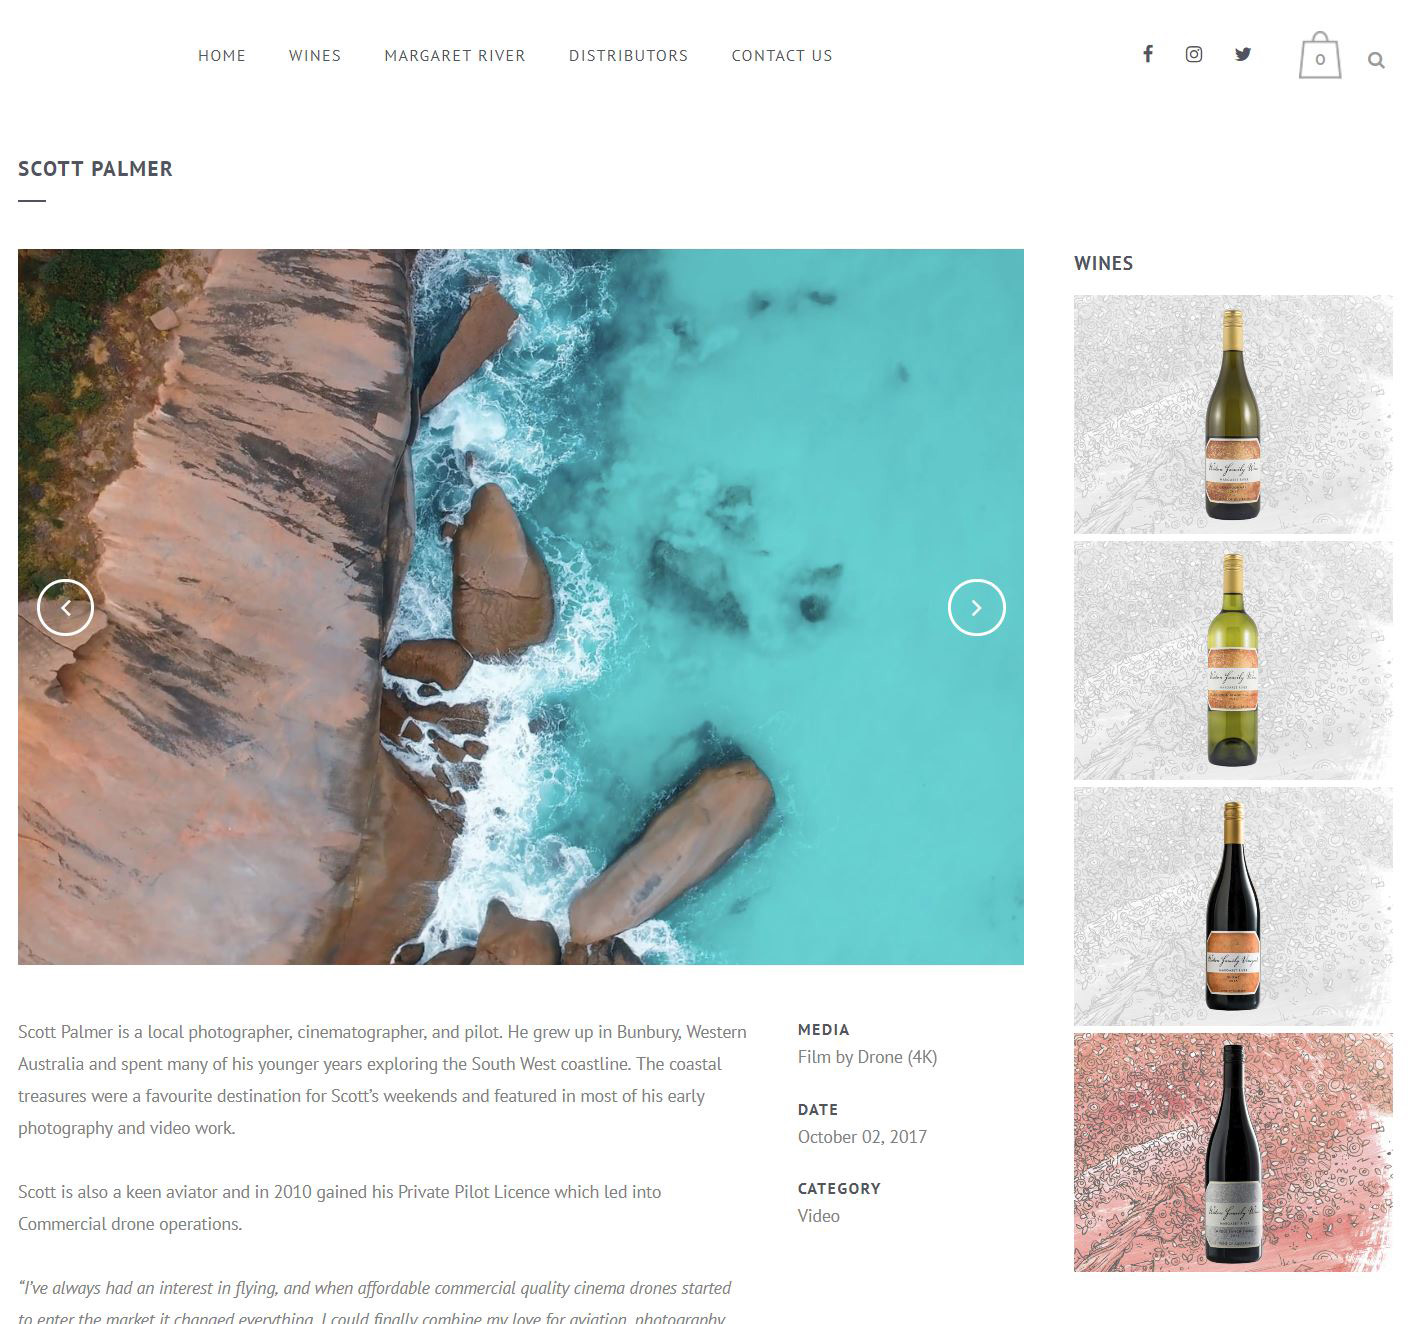 http://cdn.droneimage.com.au/wp-content/uploads/2019/07/watson-family-wines-features-drone-image-western-australia-drone-photography-tv-cinematograhy-commercial-WA-Perth.jpg?x11106